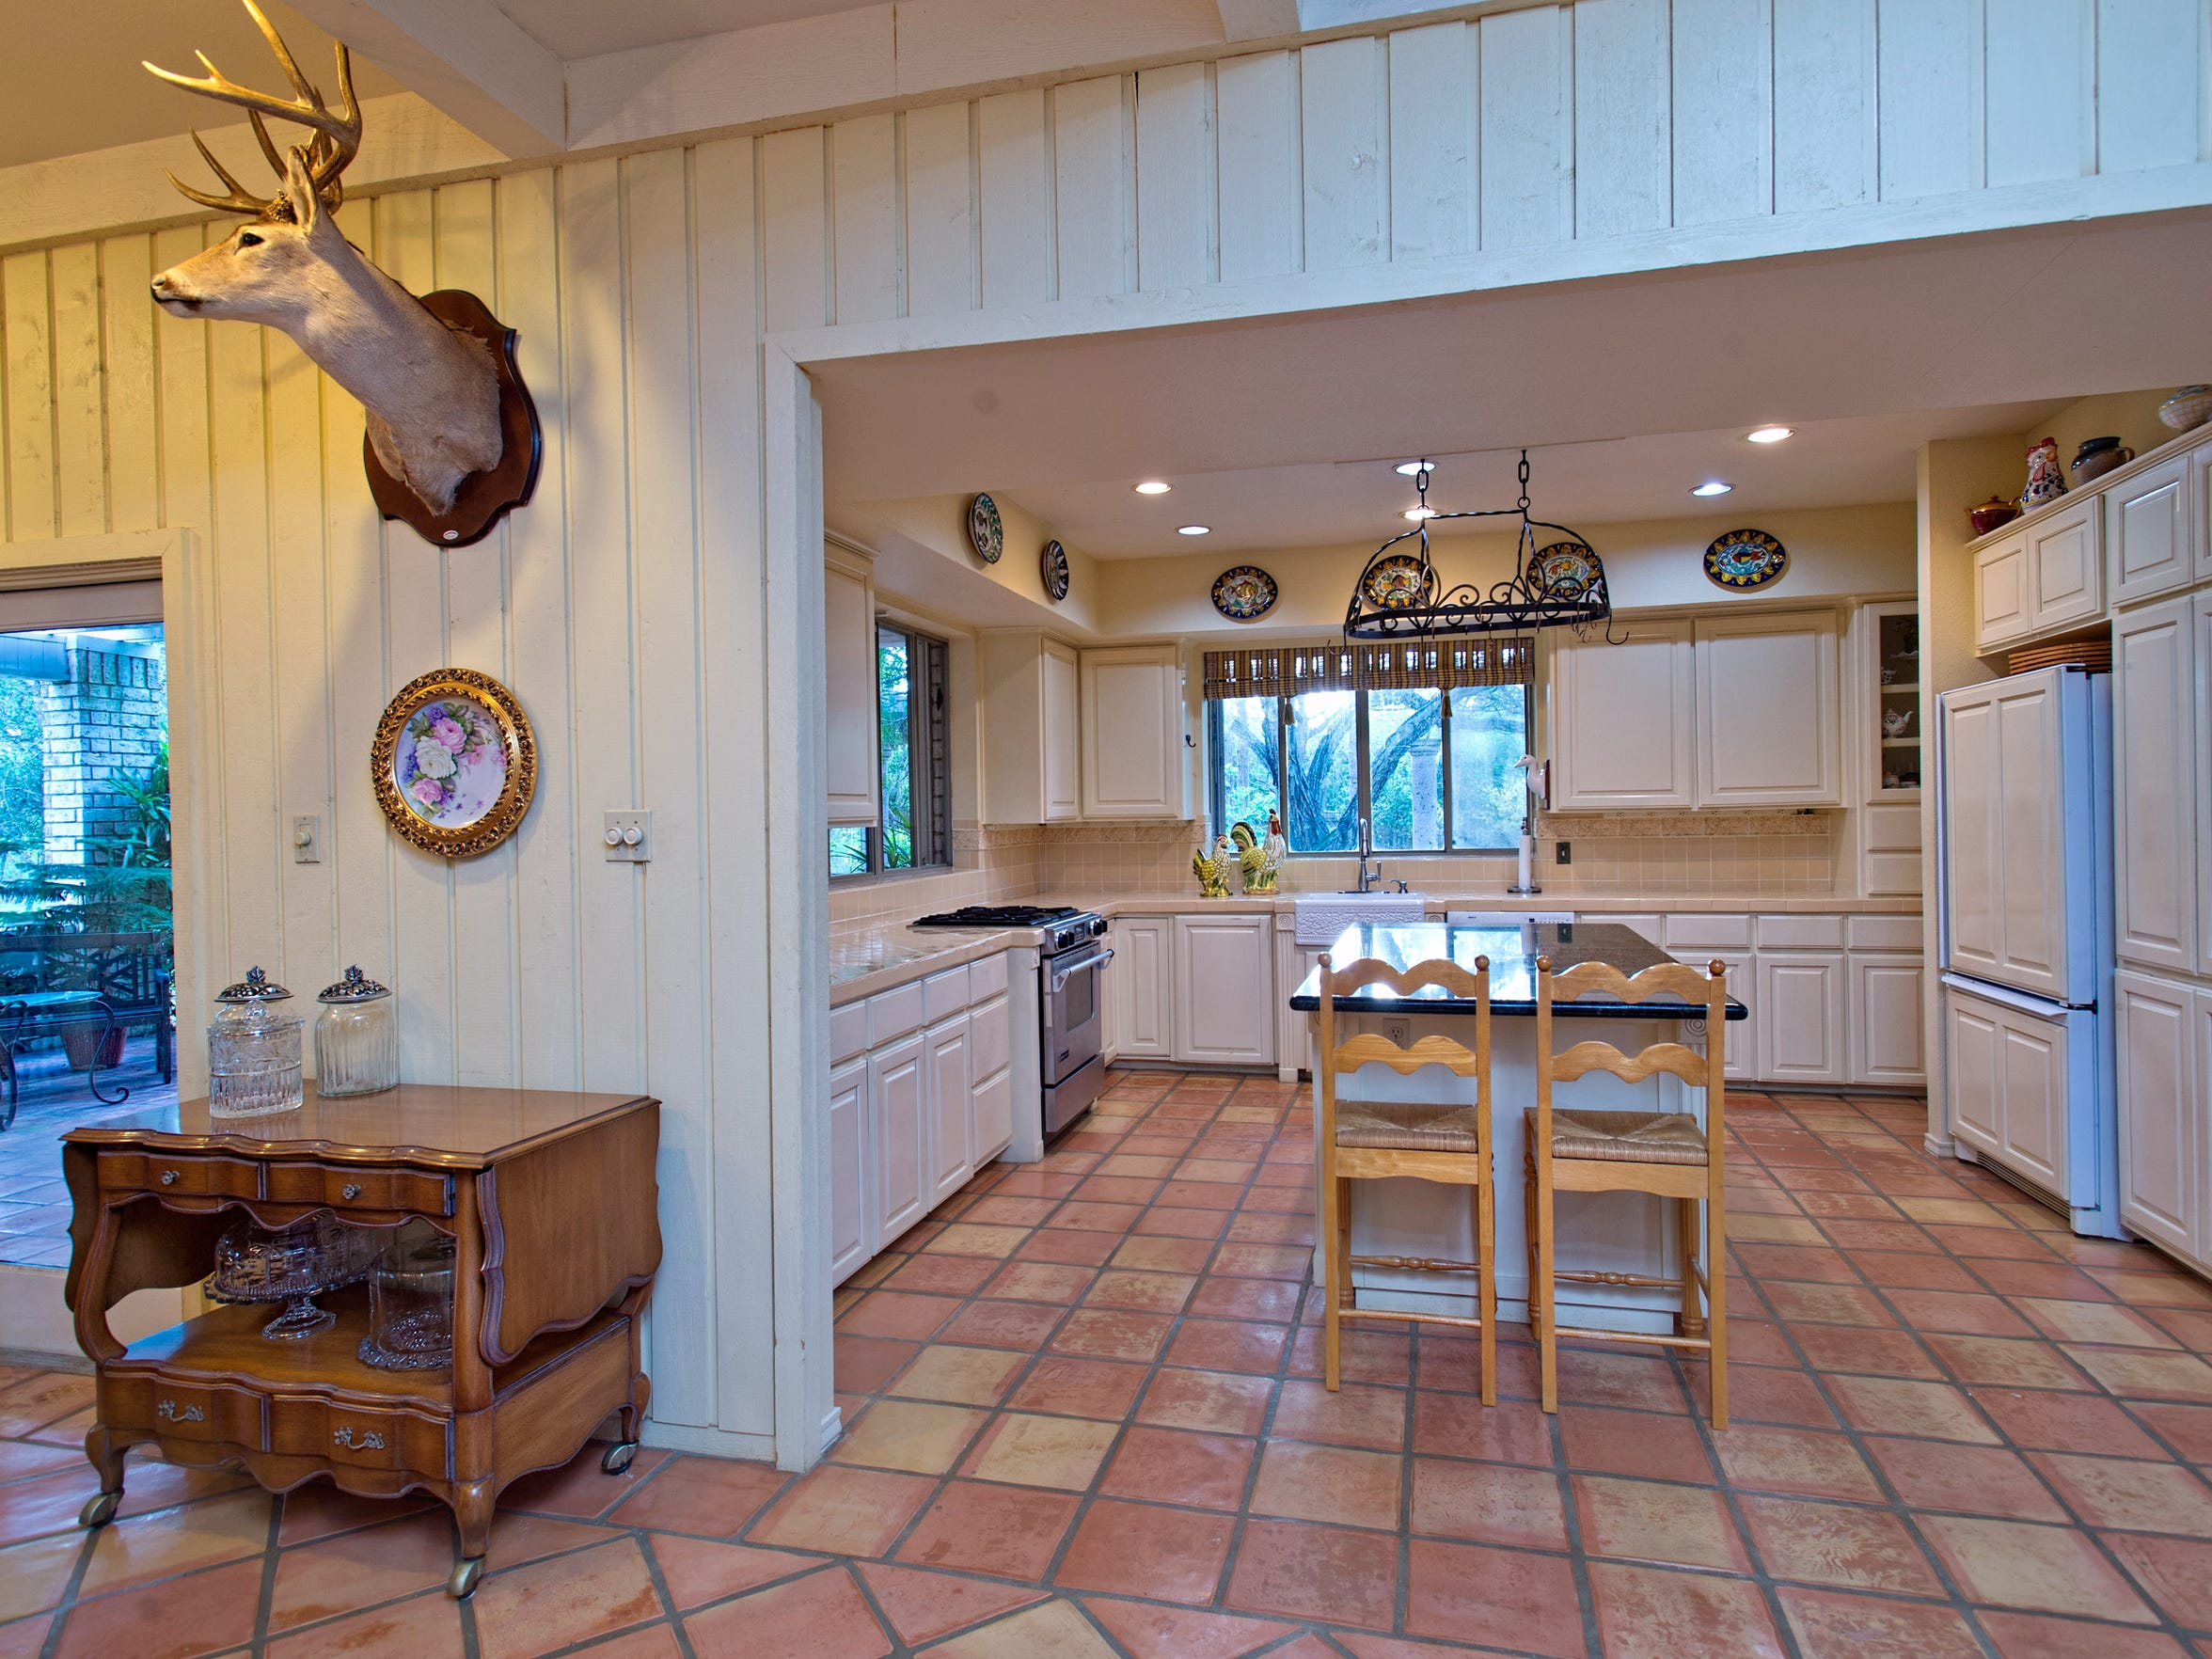 The spacious kitchen, floored in saltillo tile features